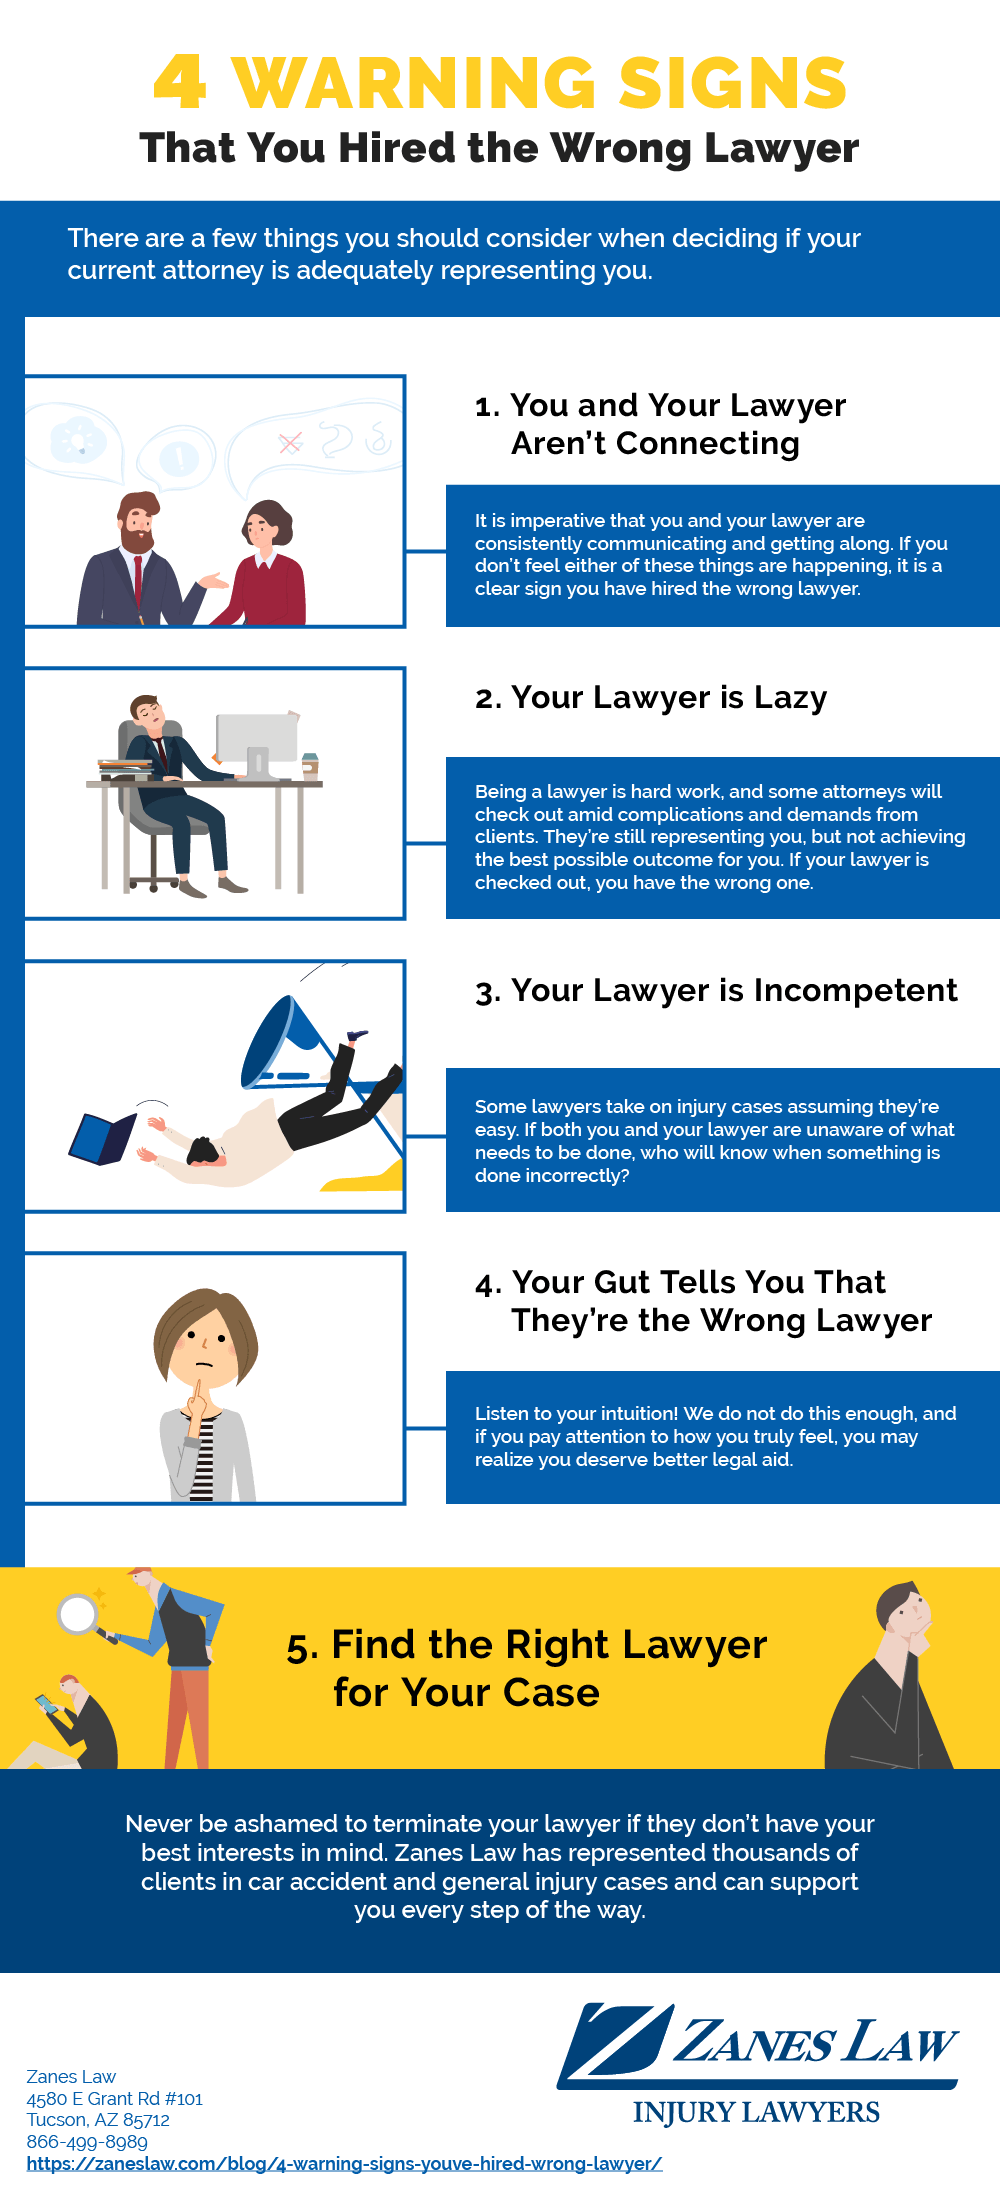 4 Warnings Signs That You've Hired the Wrong Lawyer